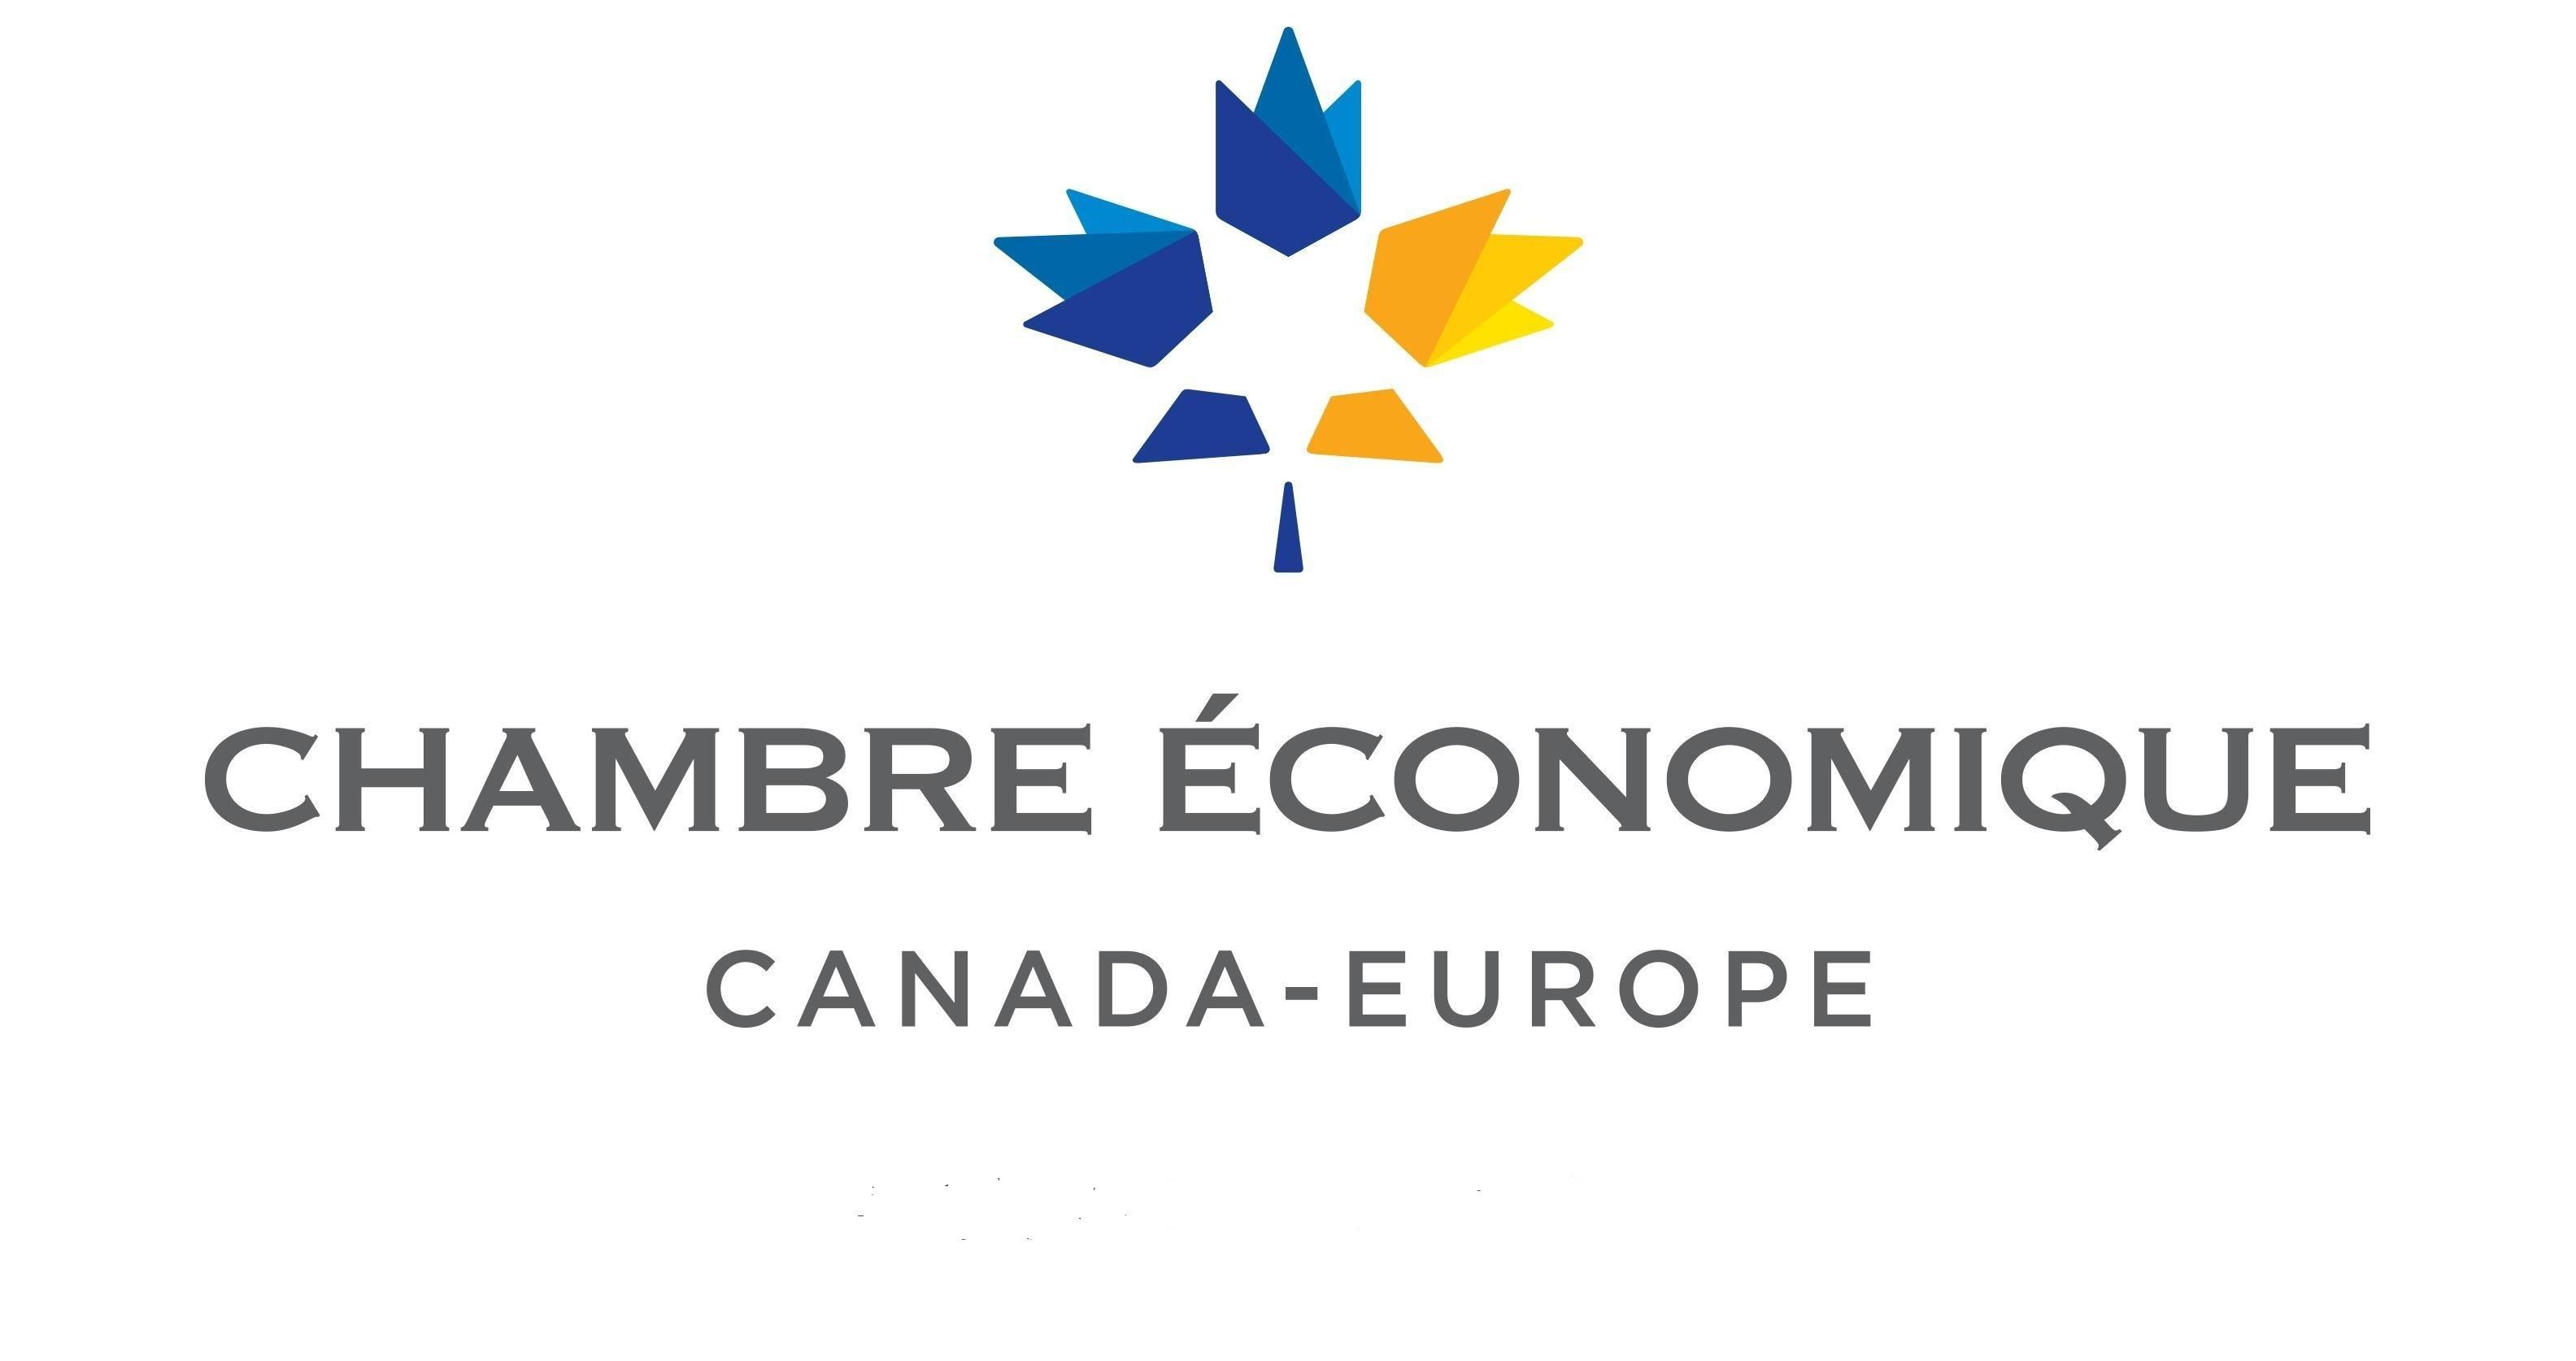 Gala d'Excellence Économique Canada-Europe